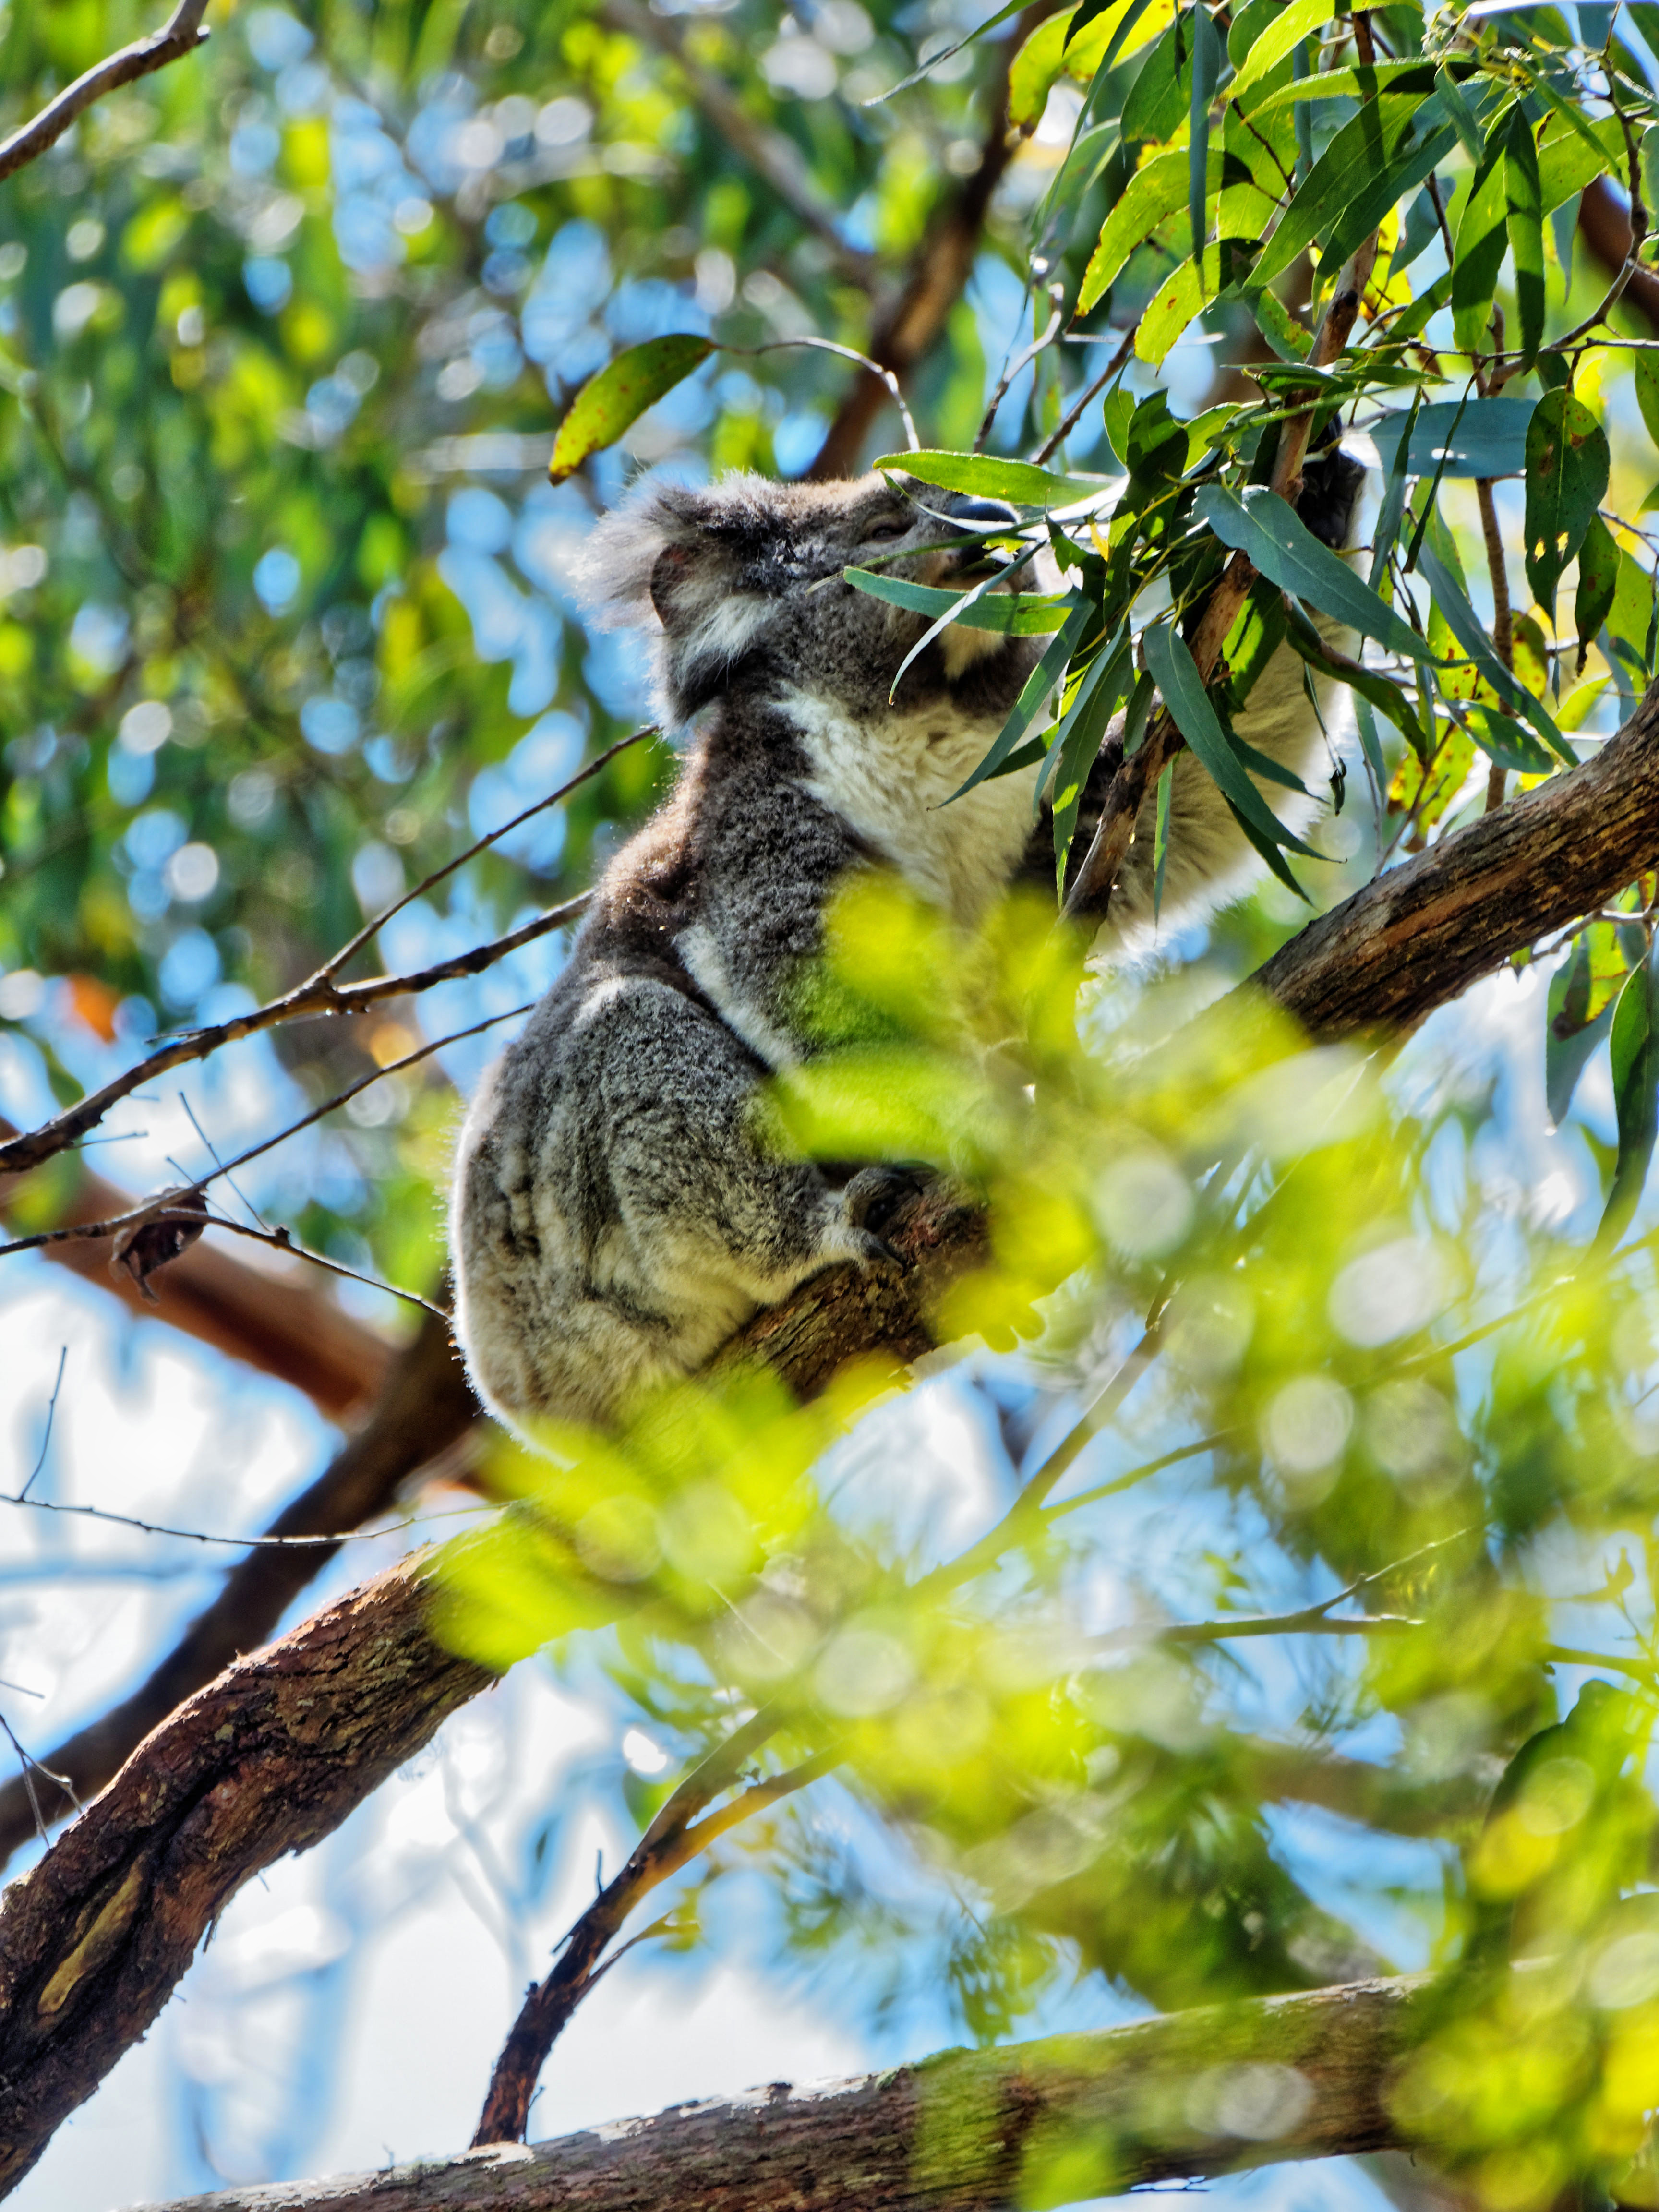 This should be Koala-10.jpeg.  Is it missing?